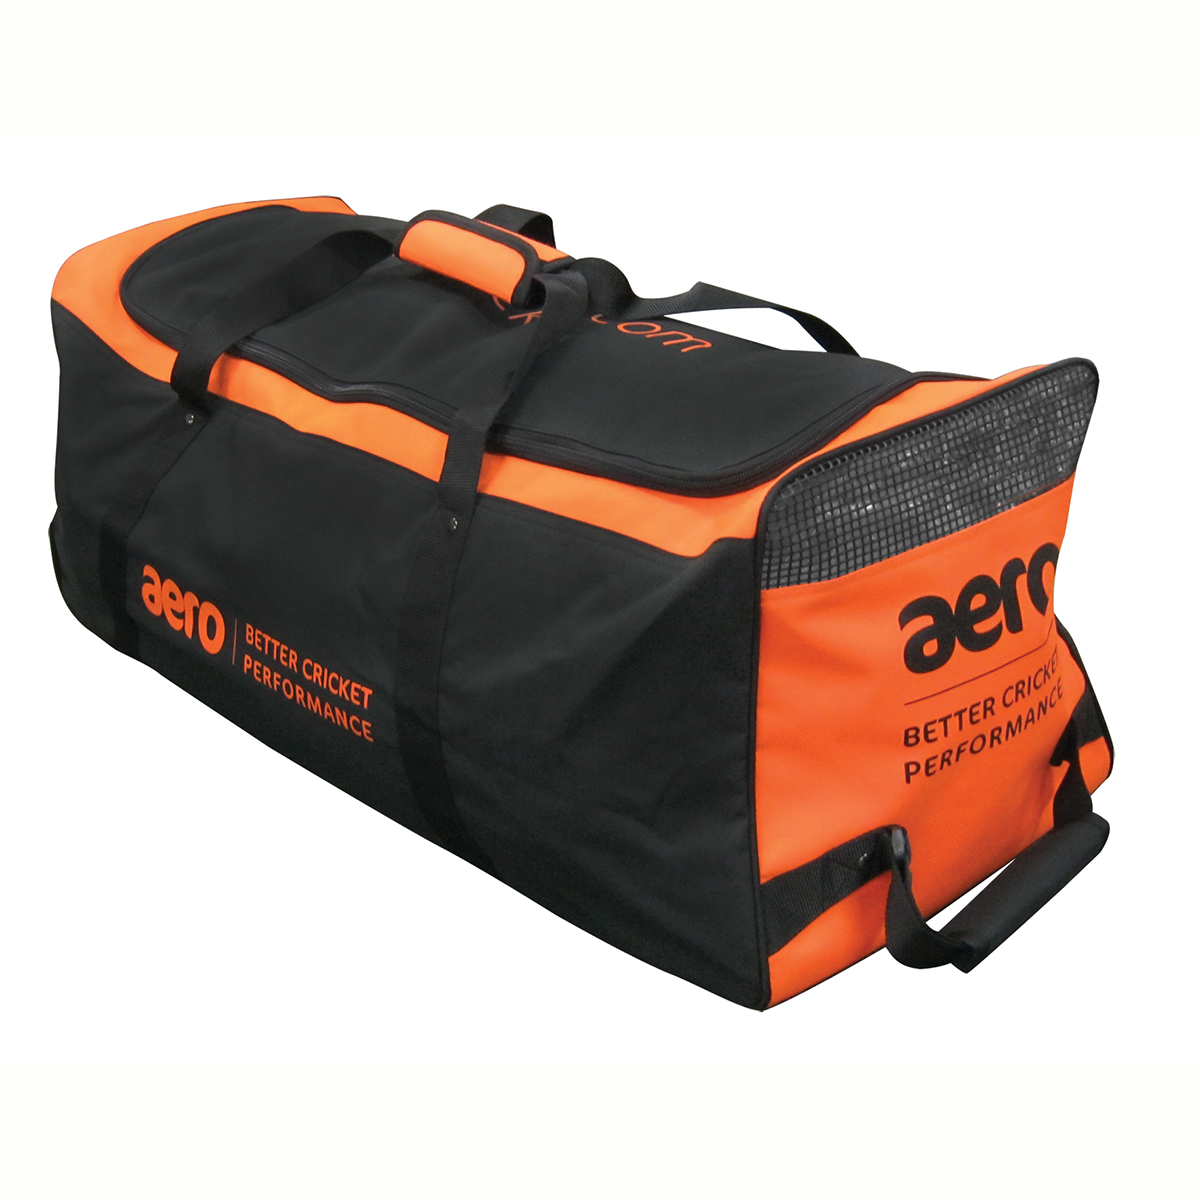 Aero Midi Wheelie Bag